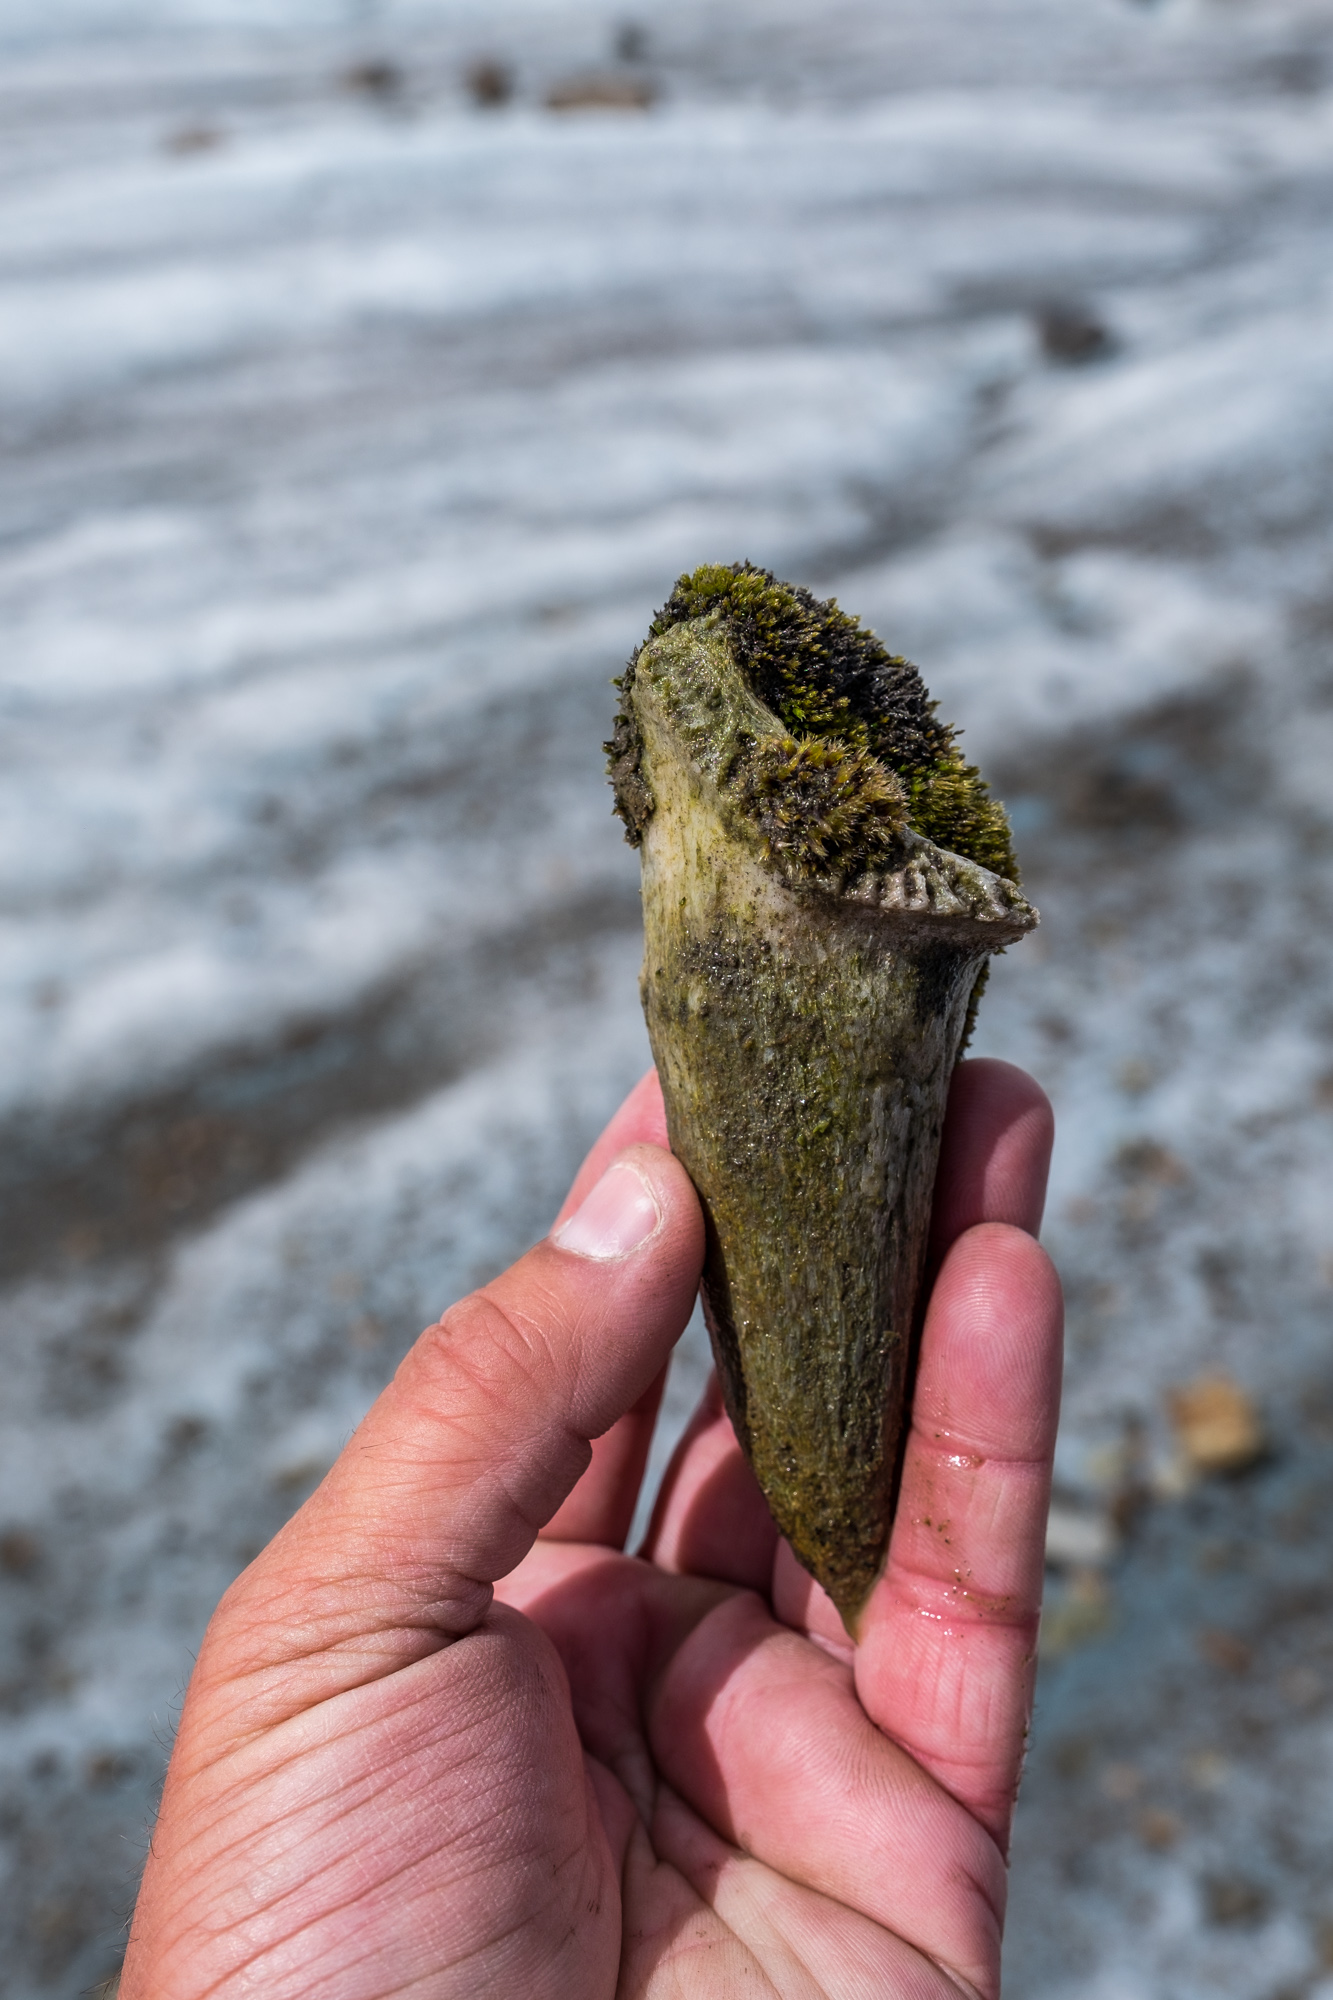 We don't know what this was, but we found it in the ice. Perhaps a billy goat horn? Or a dino tooth? If anyone knows, please do shoot us an email.